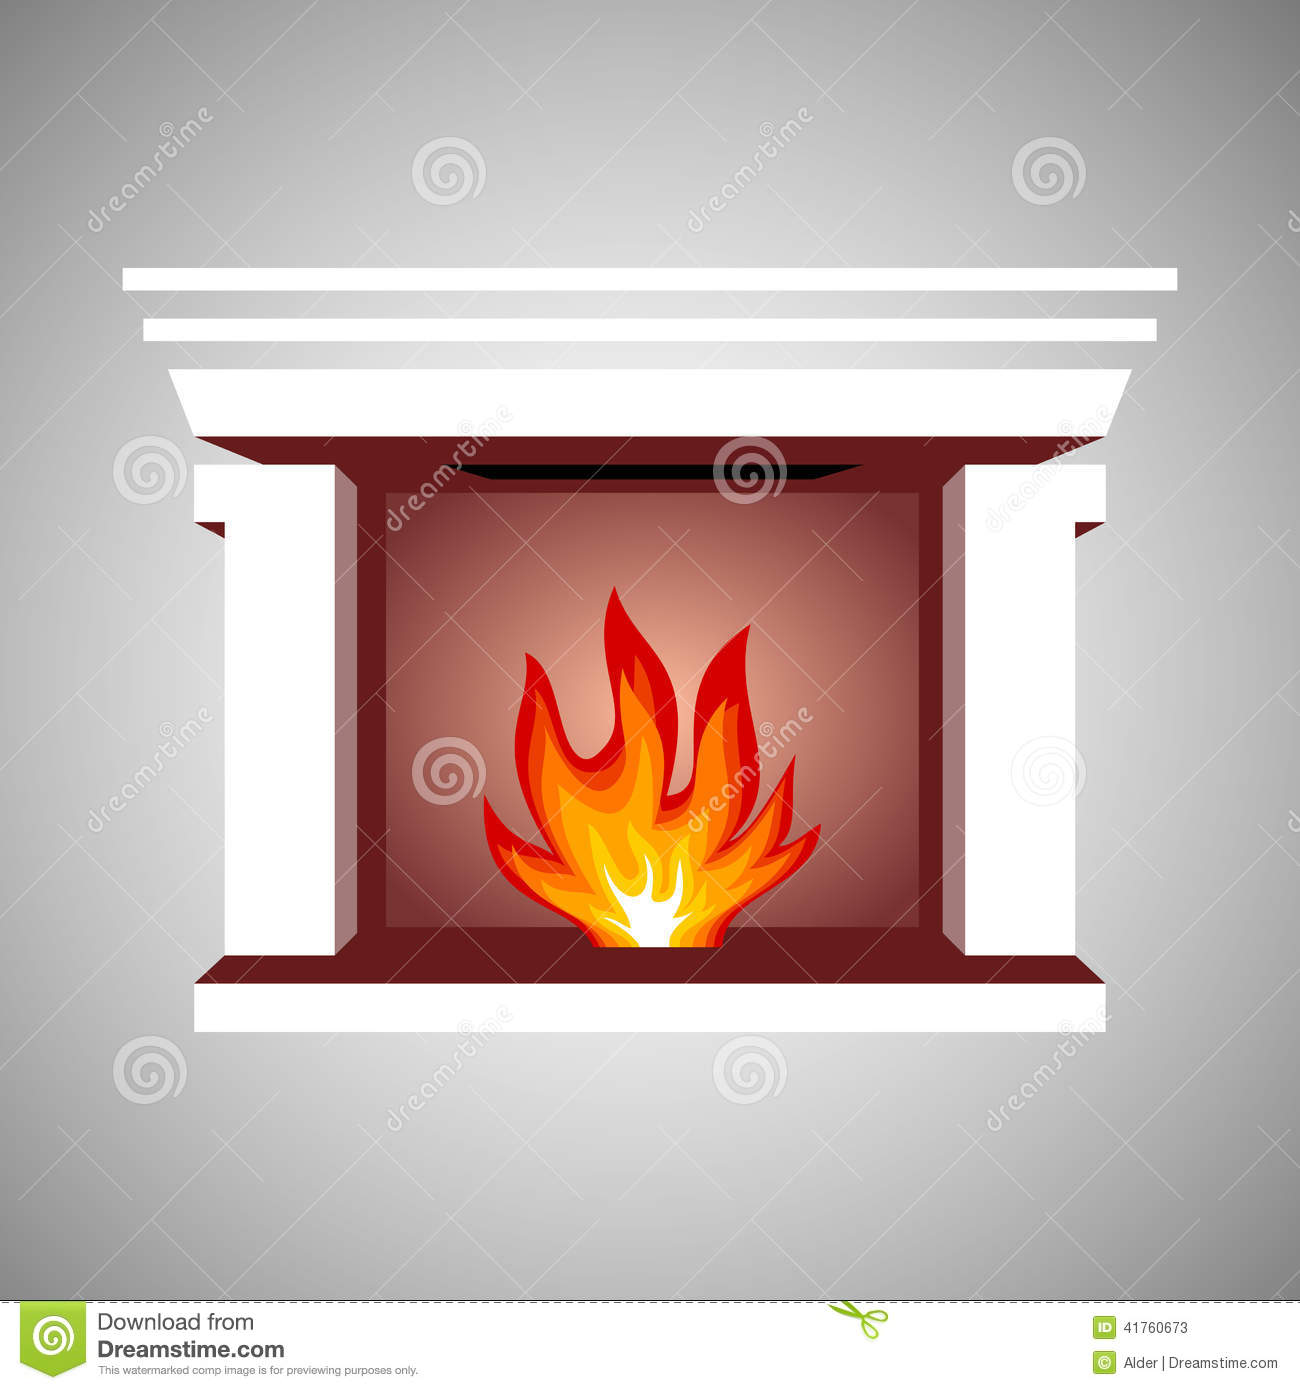 Fireplace Symbol Stock Vector - Image: 41760673